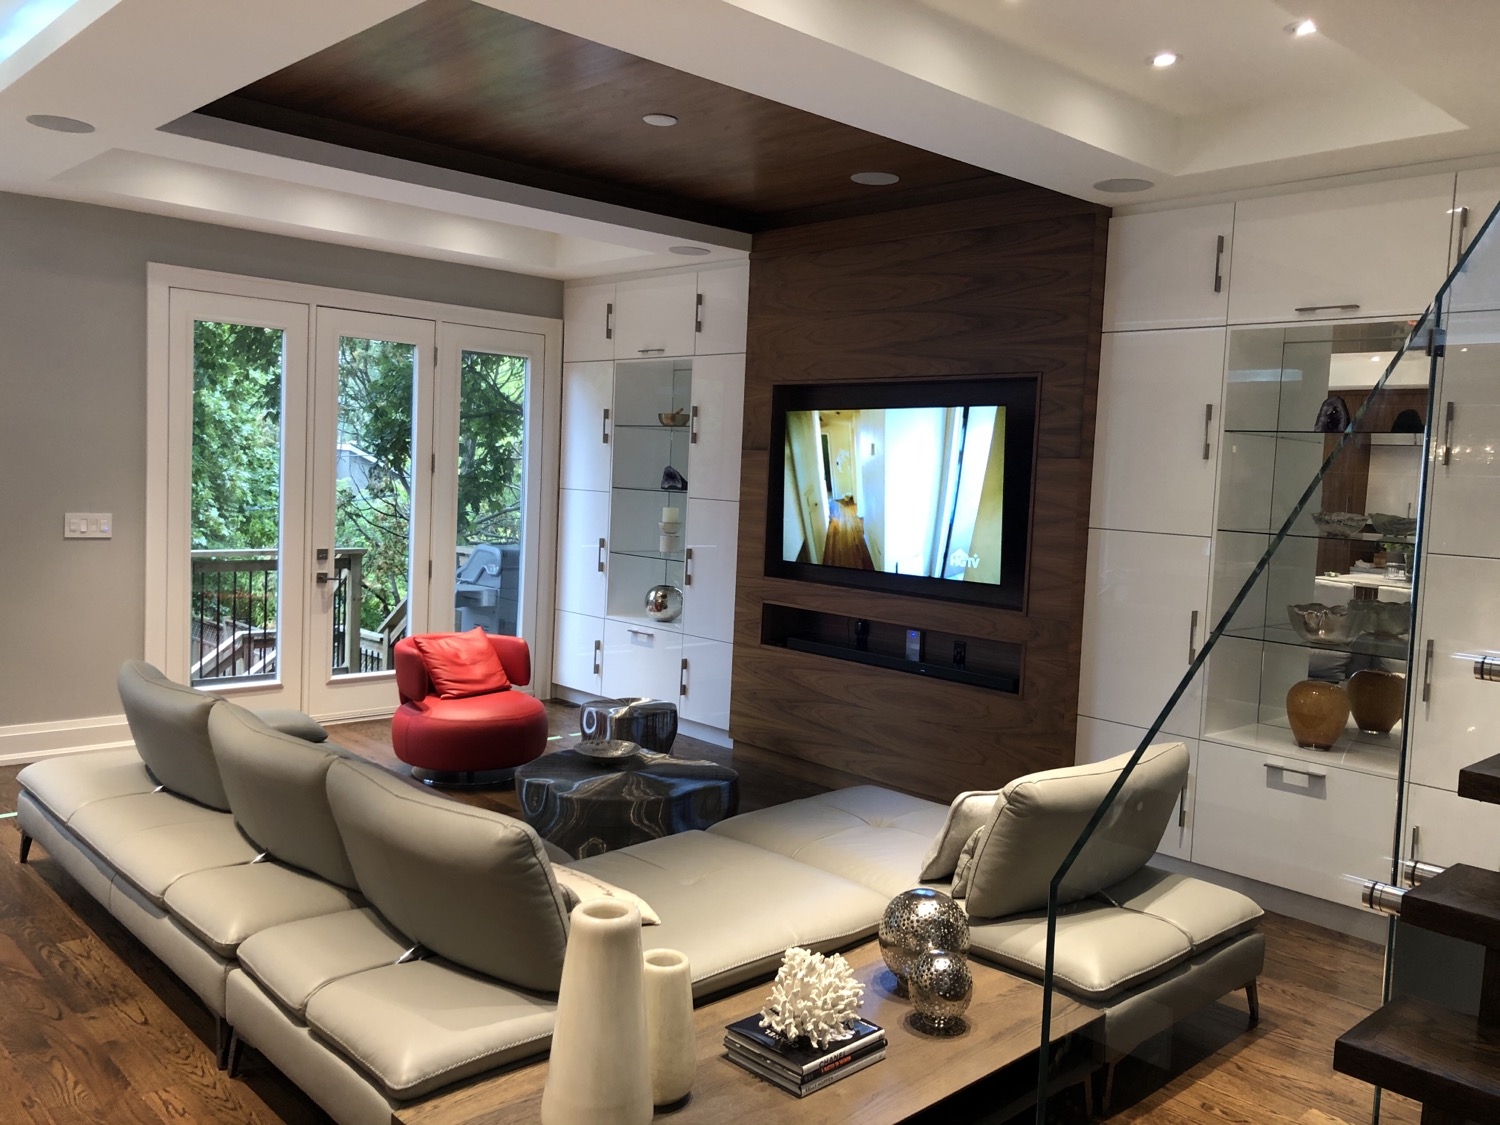 Modern Family Room - 4K LG TV